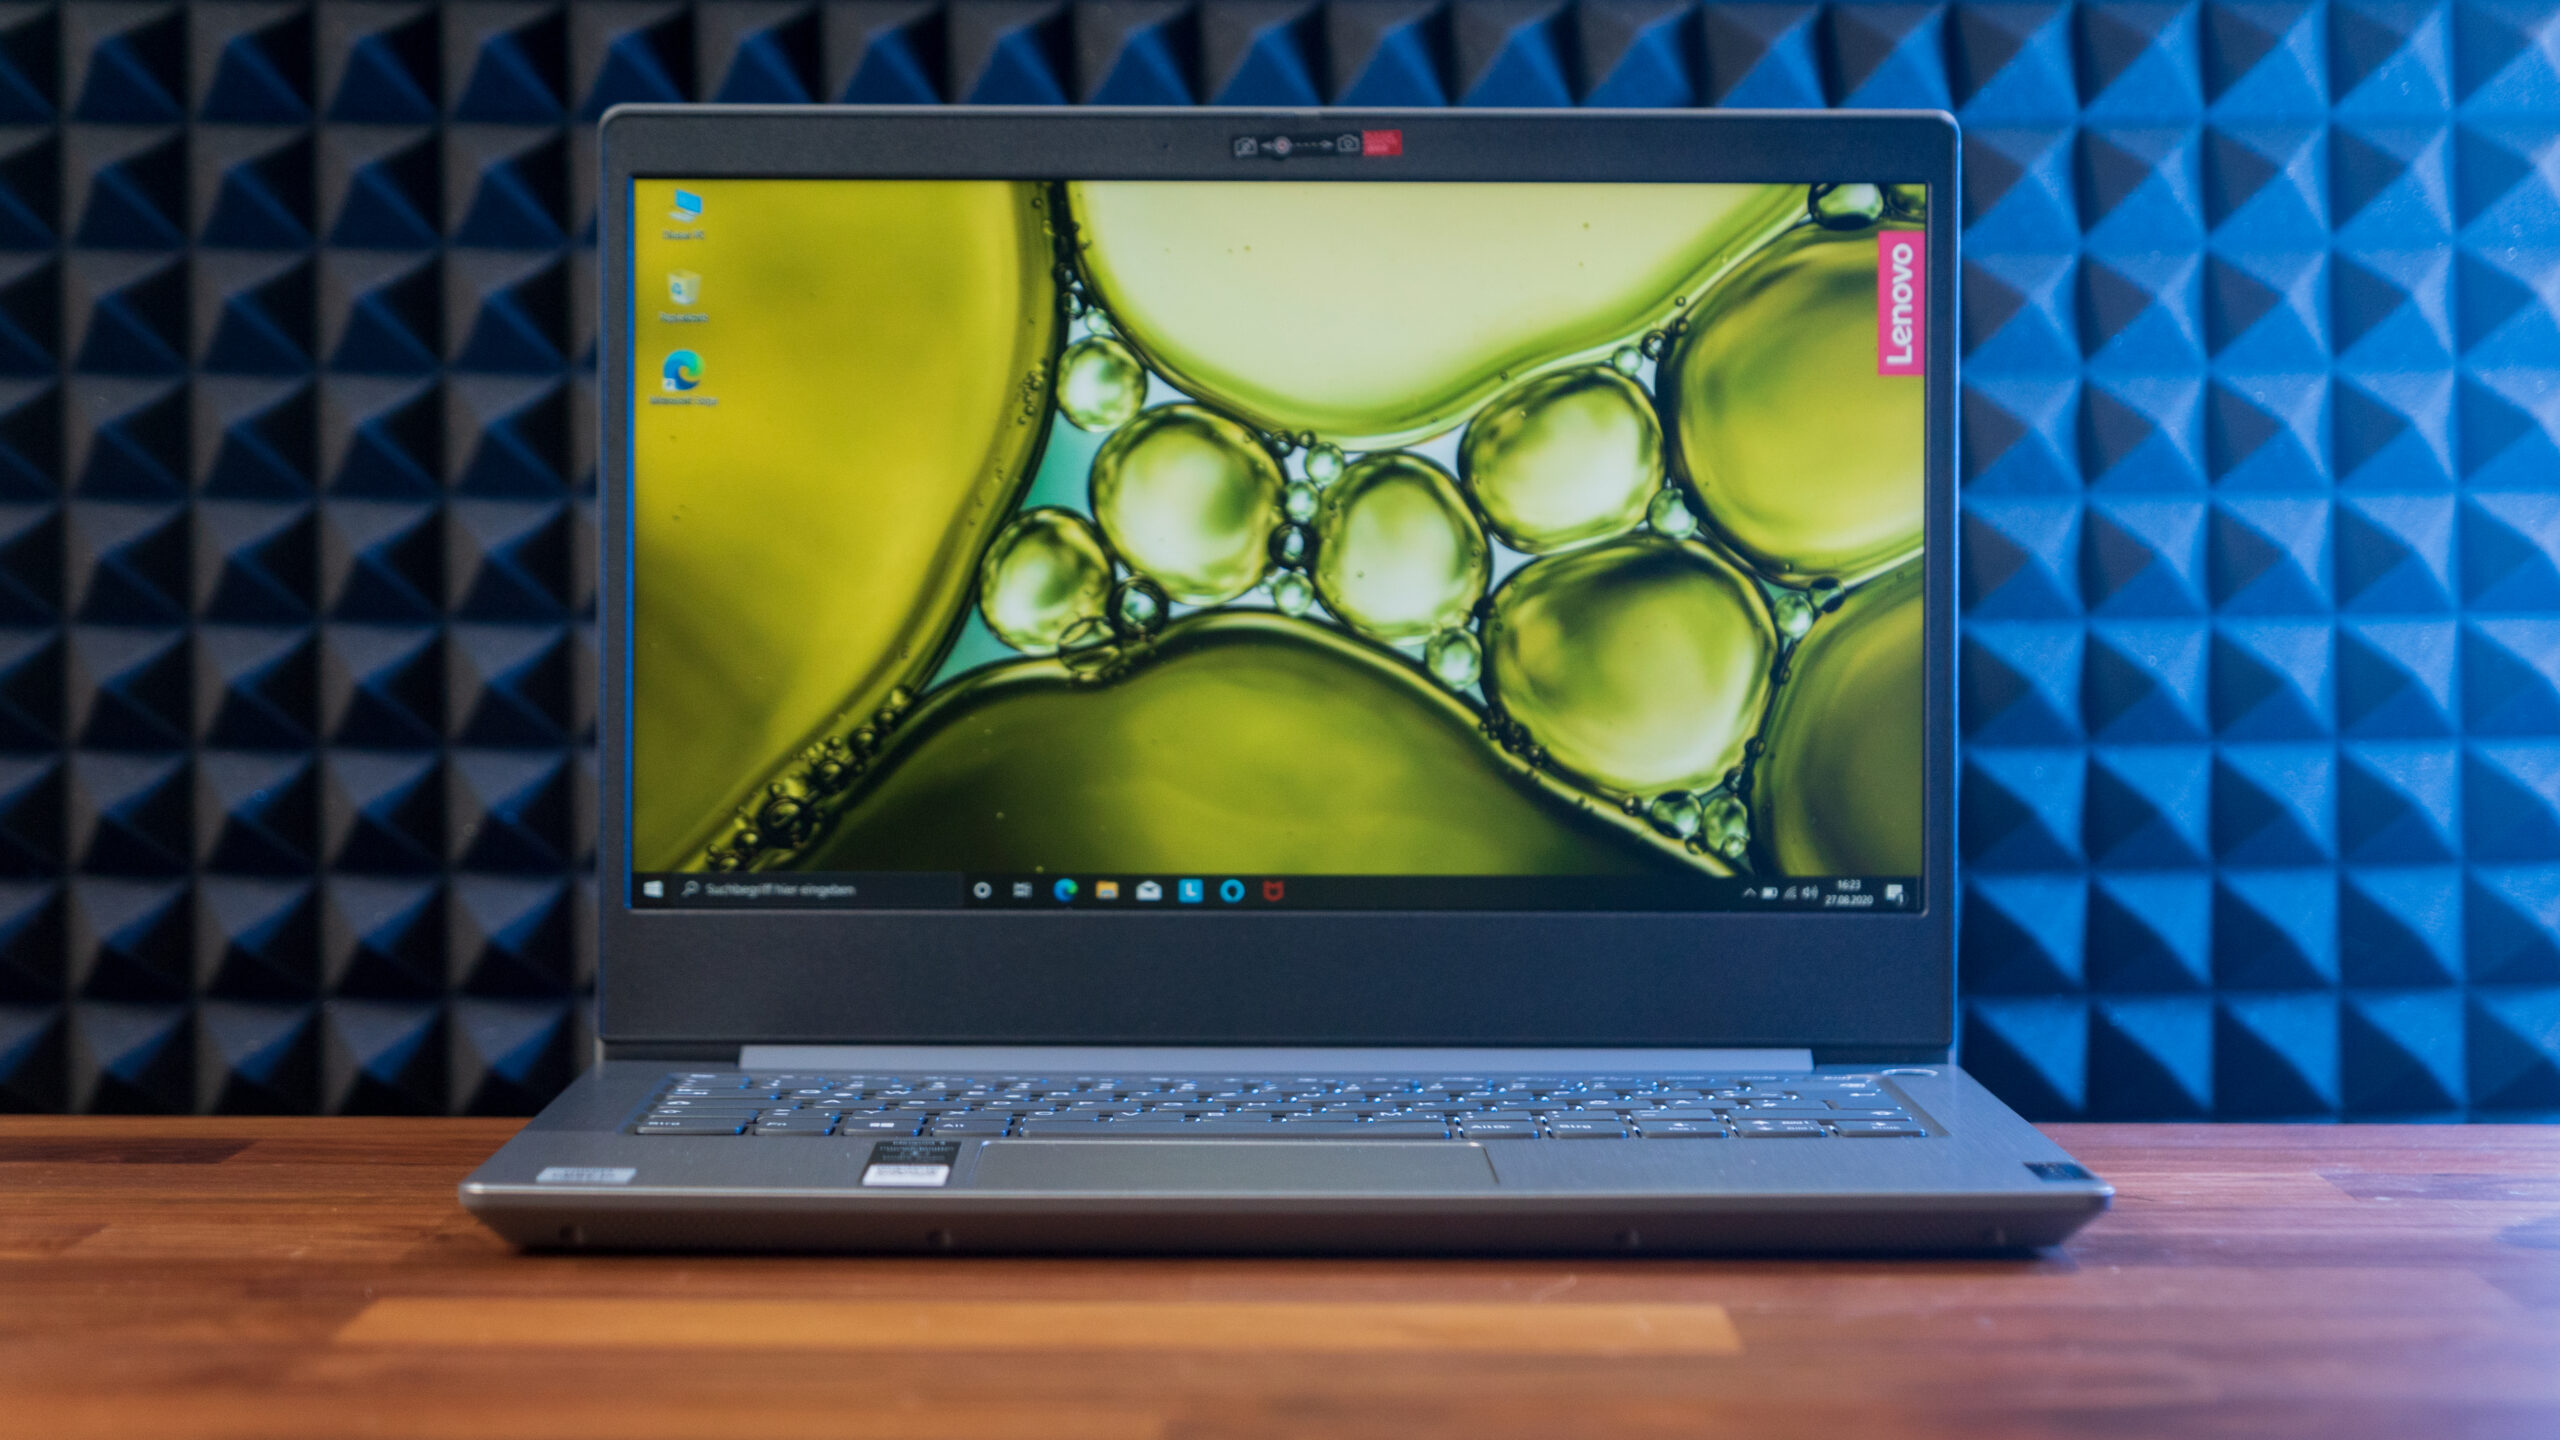 Lenovo media and gaming notebooks in the large model overview